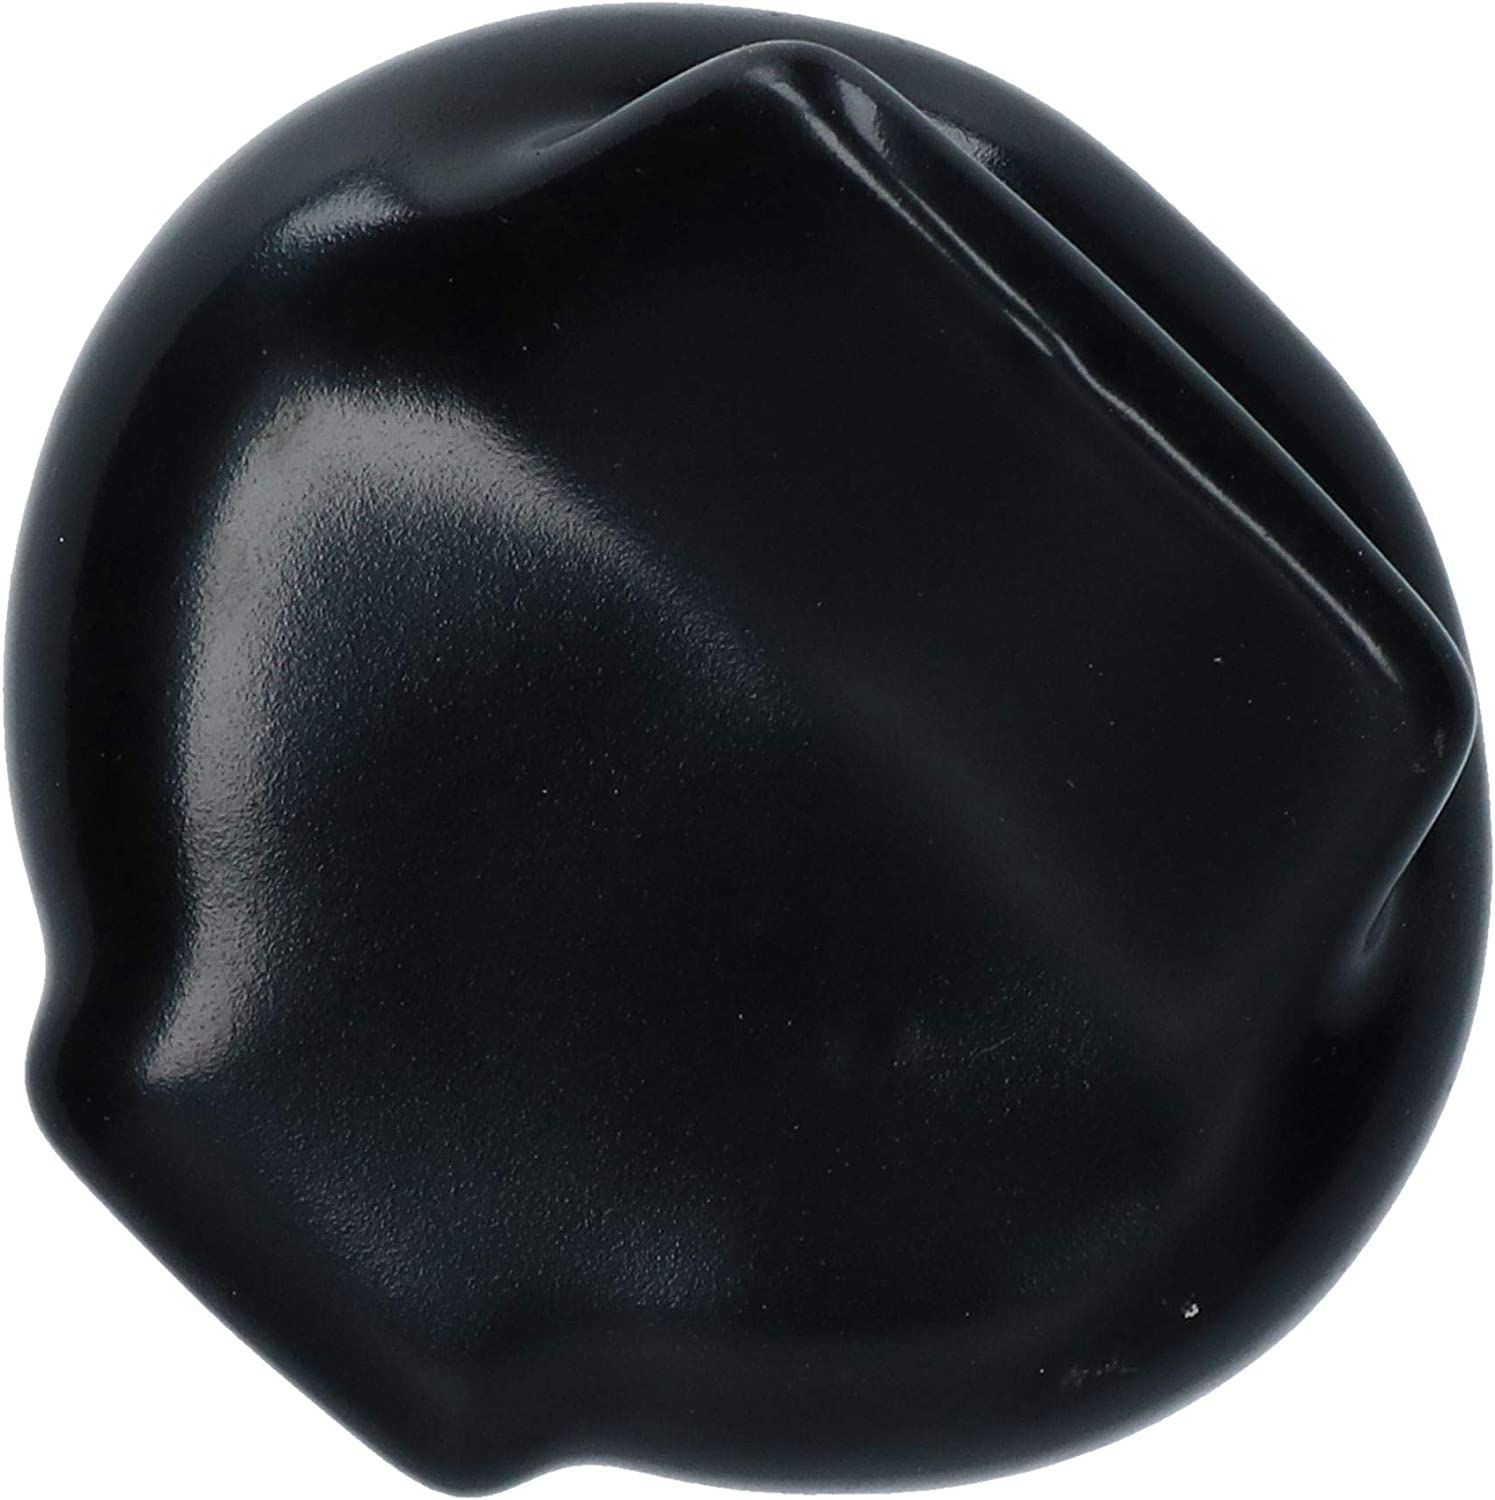 Fits Standard 50mm Ball Towbar Ball Cover Towball PVC Boot with Reflector